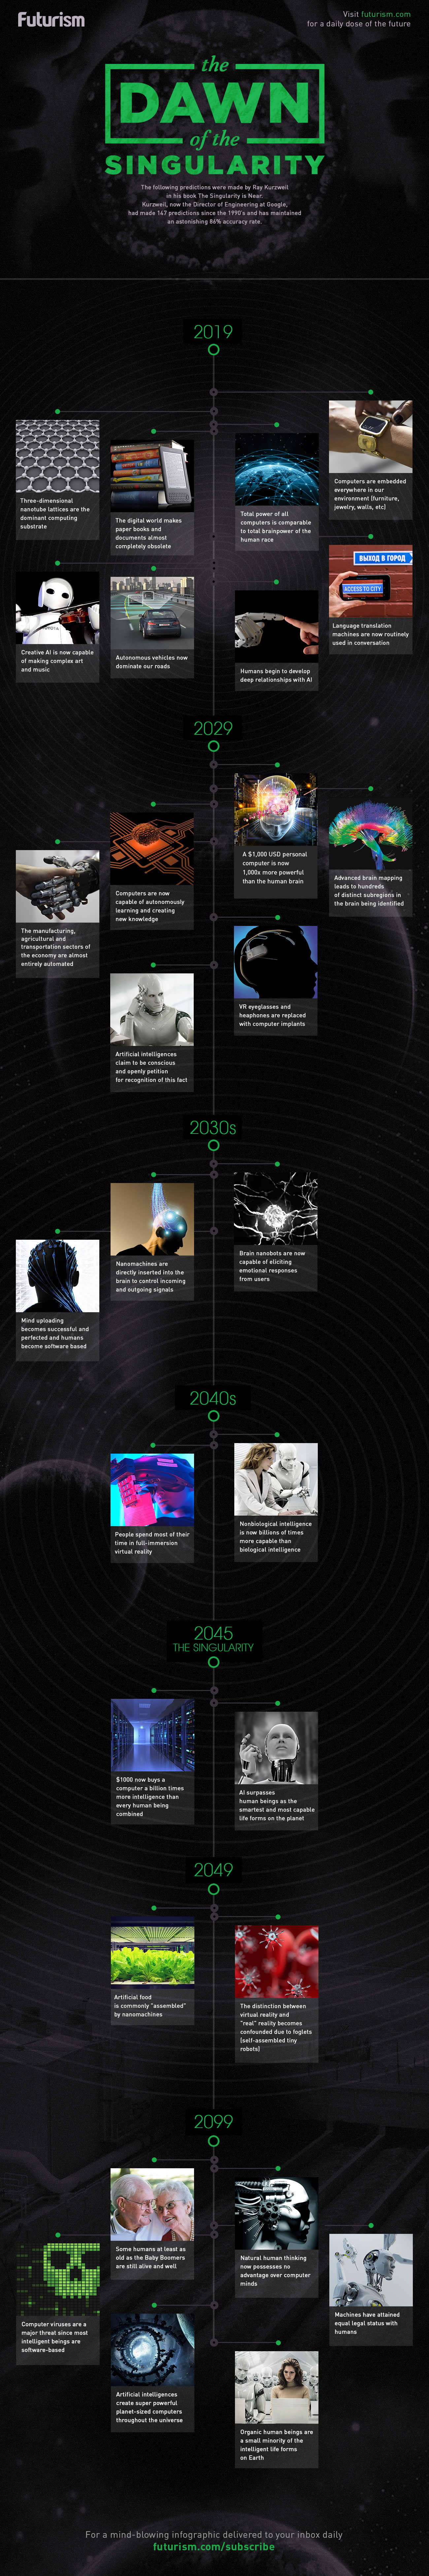 the dawn of the singularity a visual timeline of ray kurzweil s share